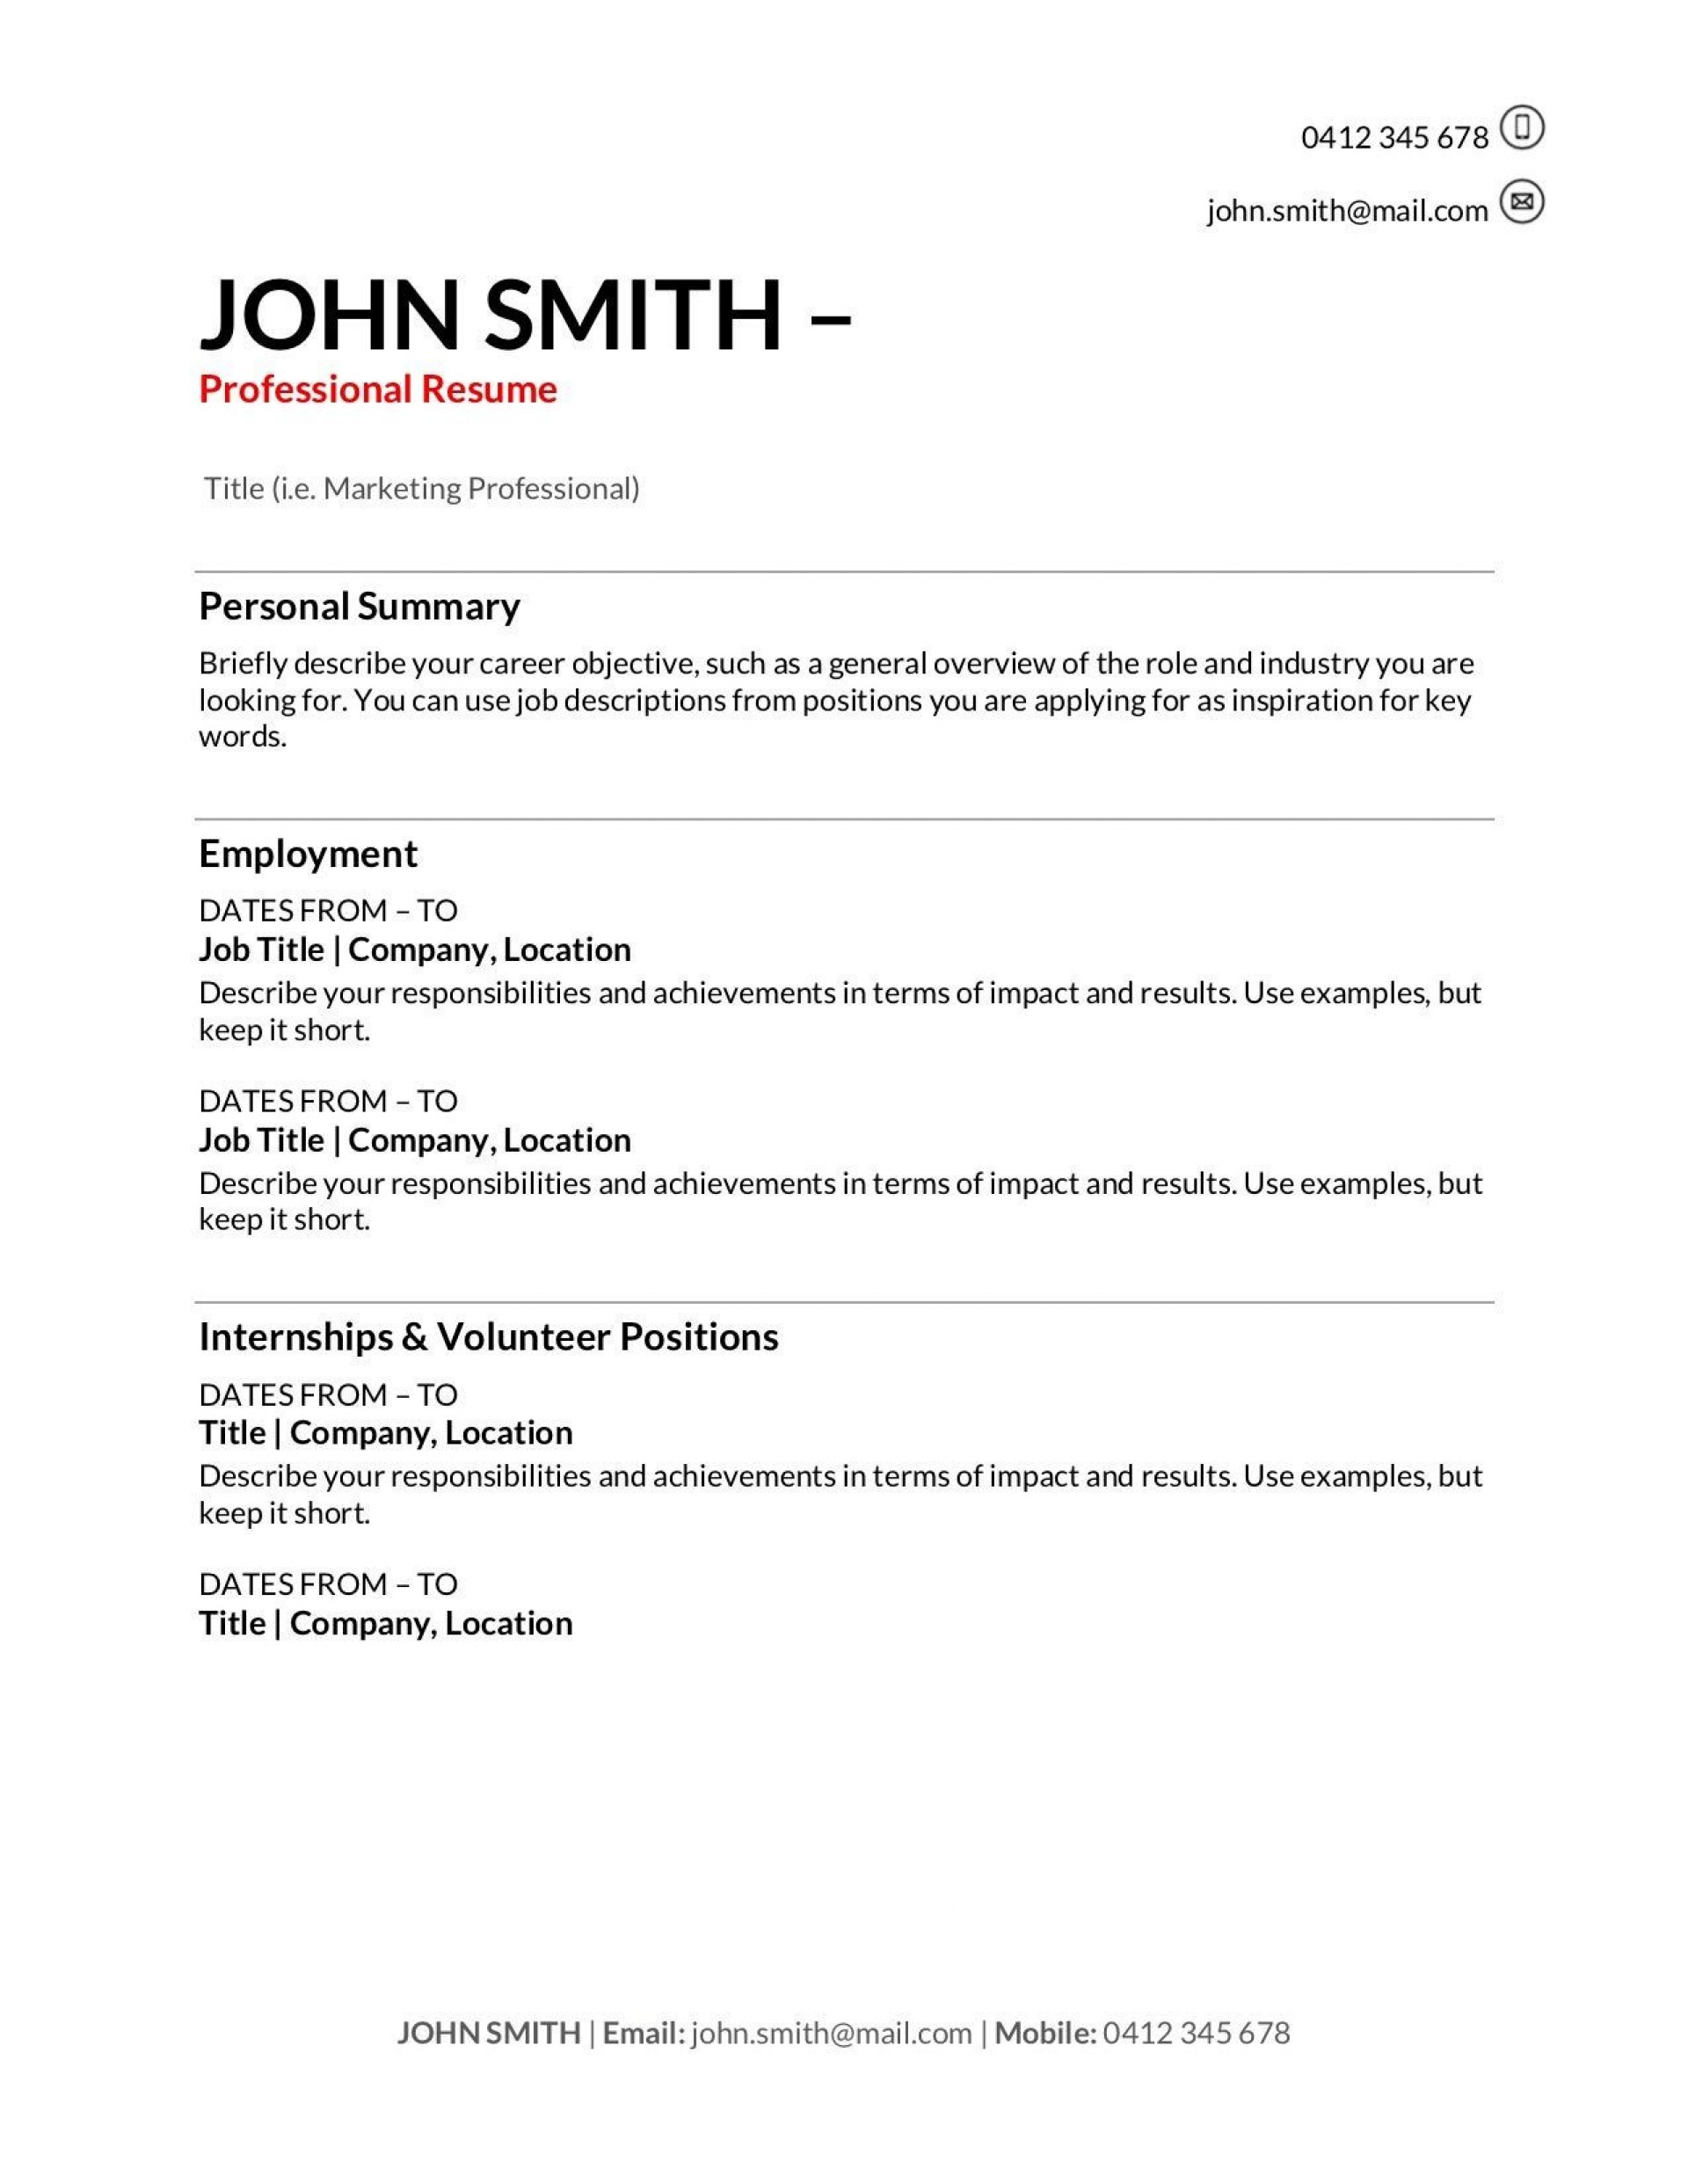 010 Fantastic Professional Resume Template Free Download Word High Definition  Cv 2020 Format With Photo1920